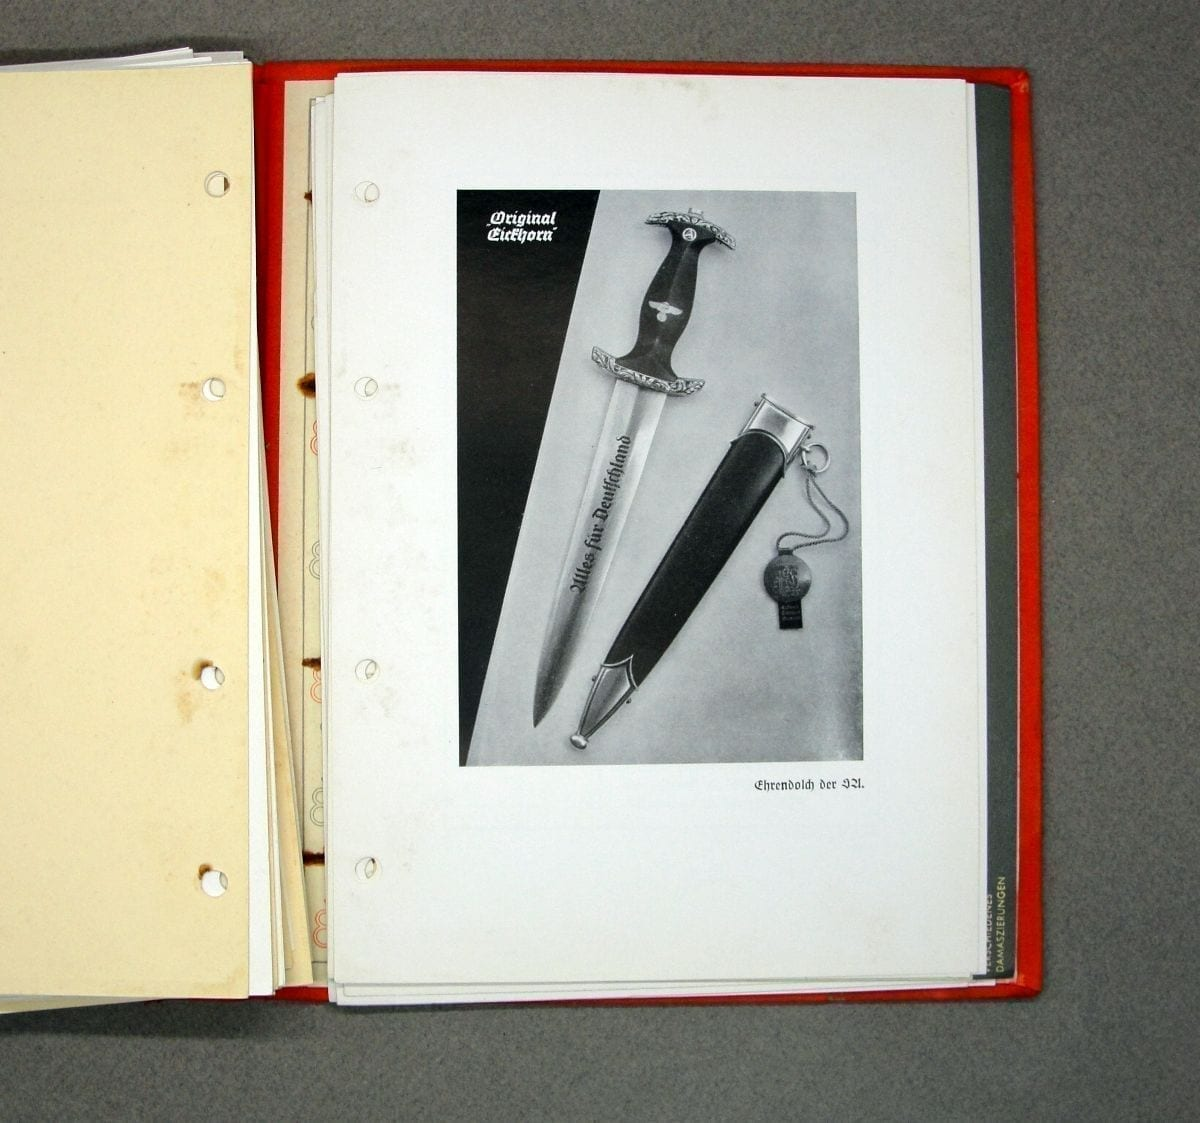 Eickhorn Dagger and Edged Weapons Catalog